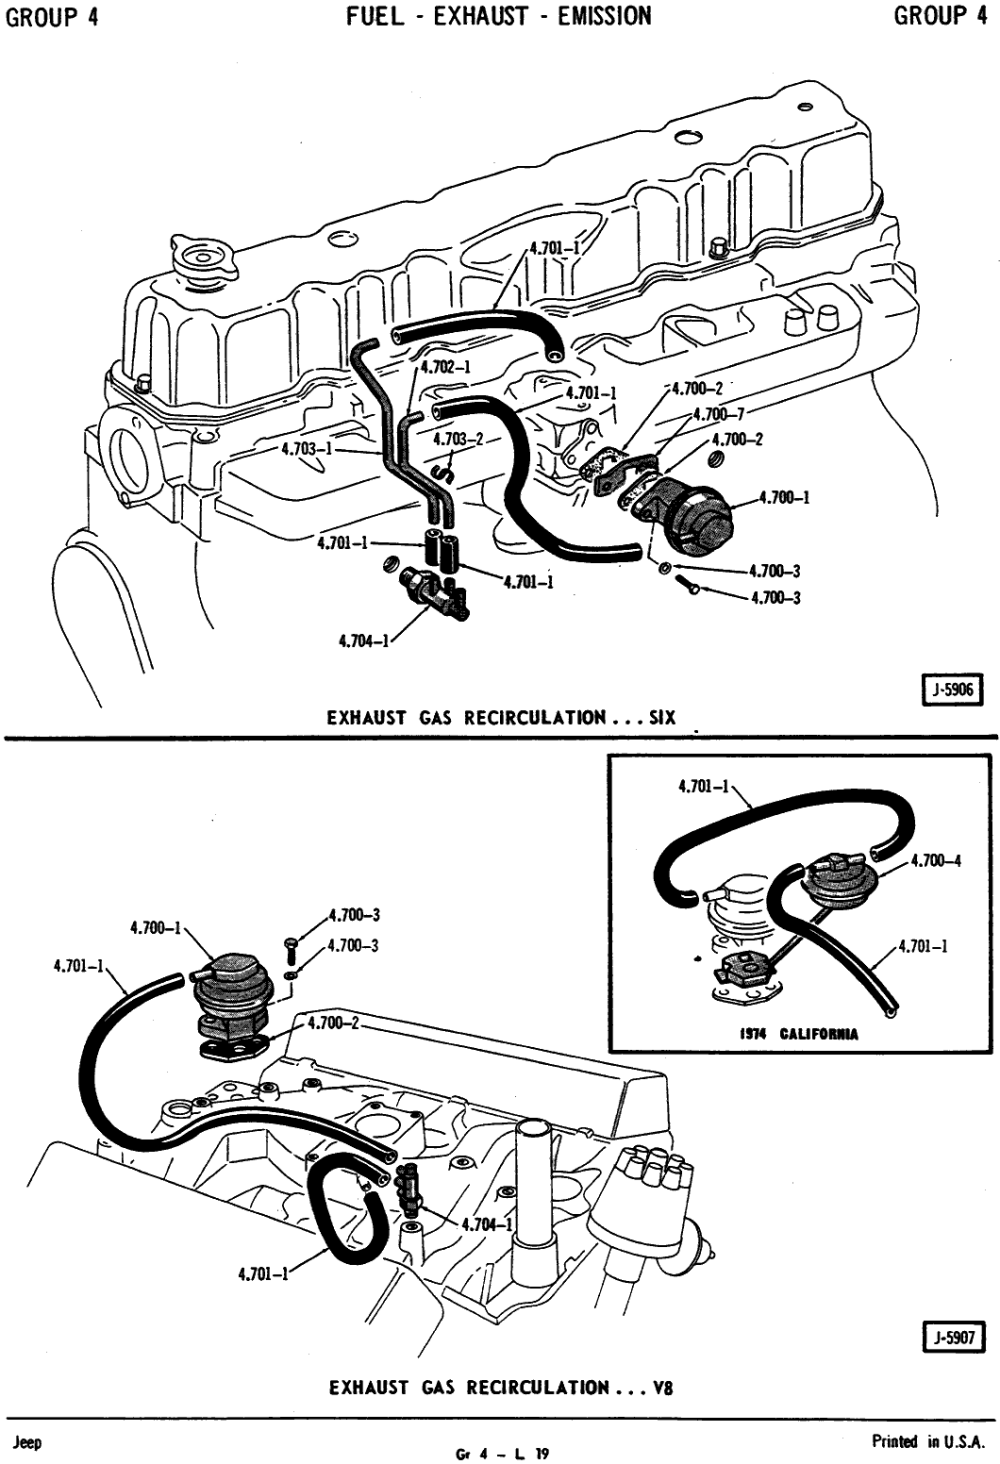 medium resolution of 83 cj7 engine diagram wiring diagram portal jeep cj heater diagram jeep cj engine diagram